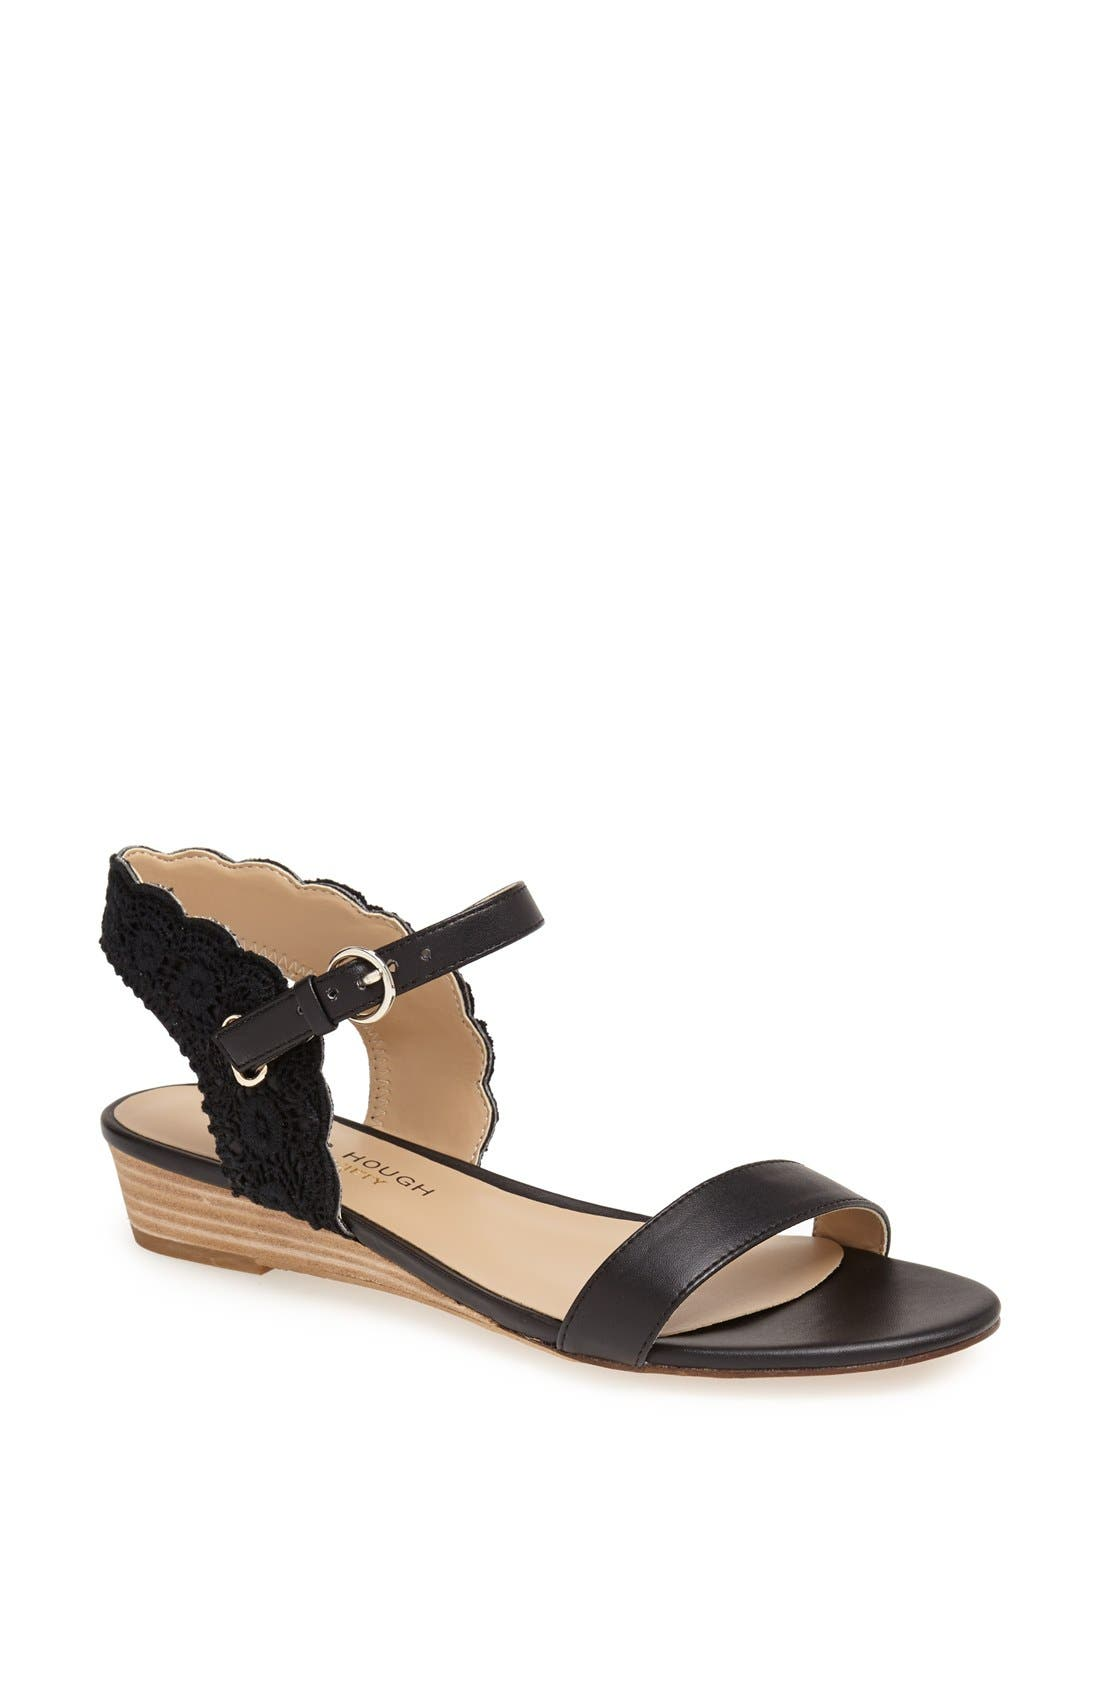 Alternate Image 1 Selected - Julianne Hough for Sole Society 'Robyn' Sandal